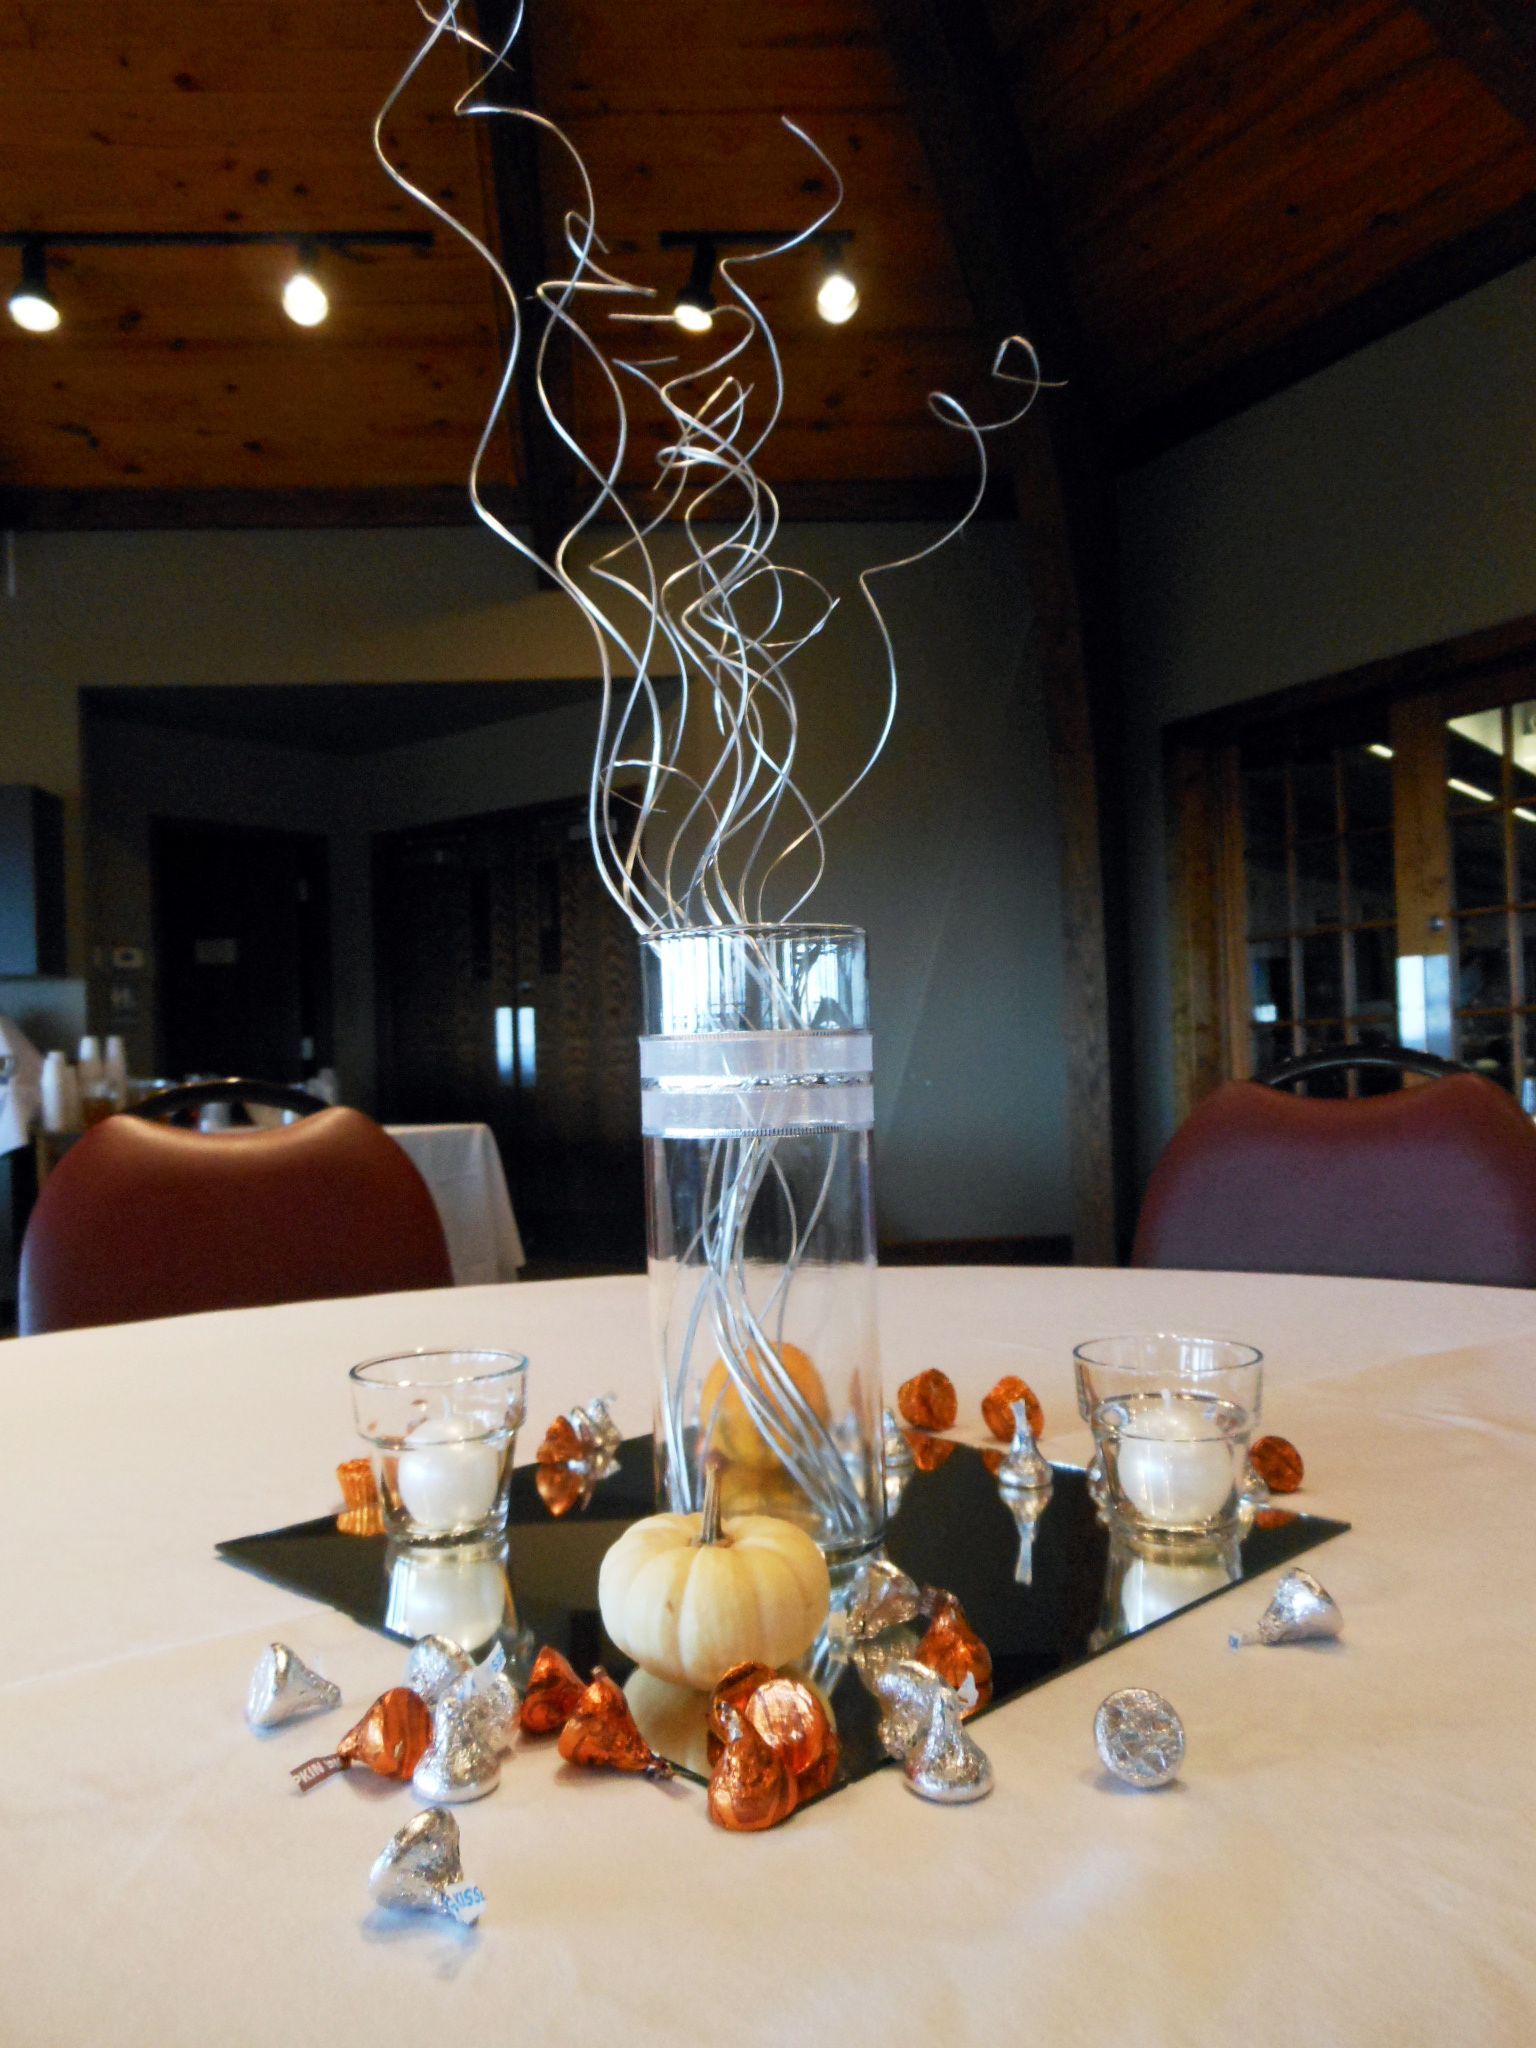 10th wedding anniversary decor ideas table centerpieces for 25 year anniversary decoration ideas